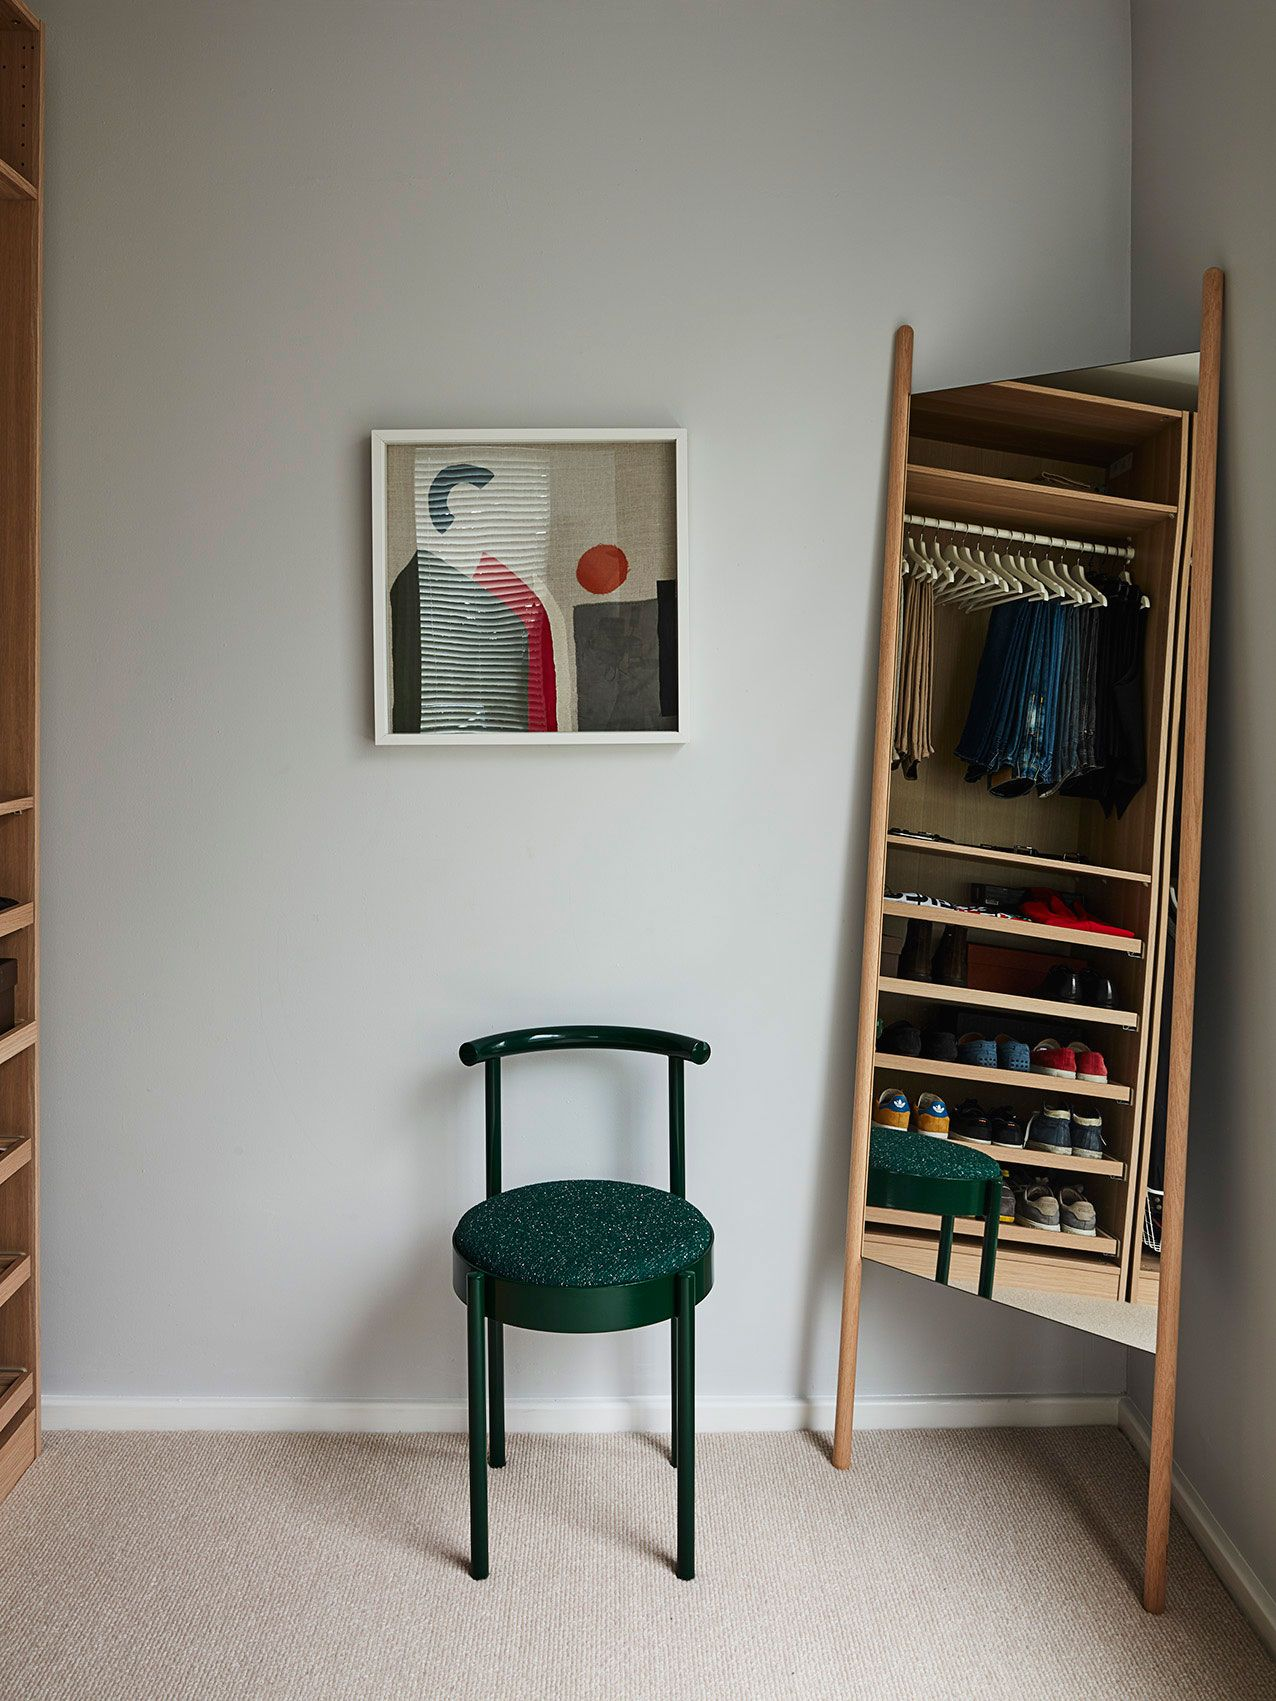 Interview Perth Based Interior Architect Jen Lowe Of Ohlo Studio Interior Architect Interior Bookshelves In Bedroom